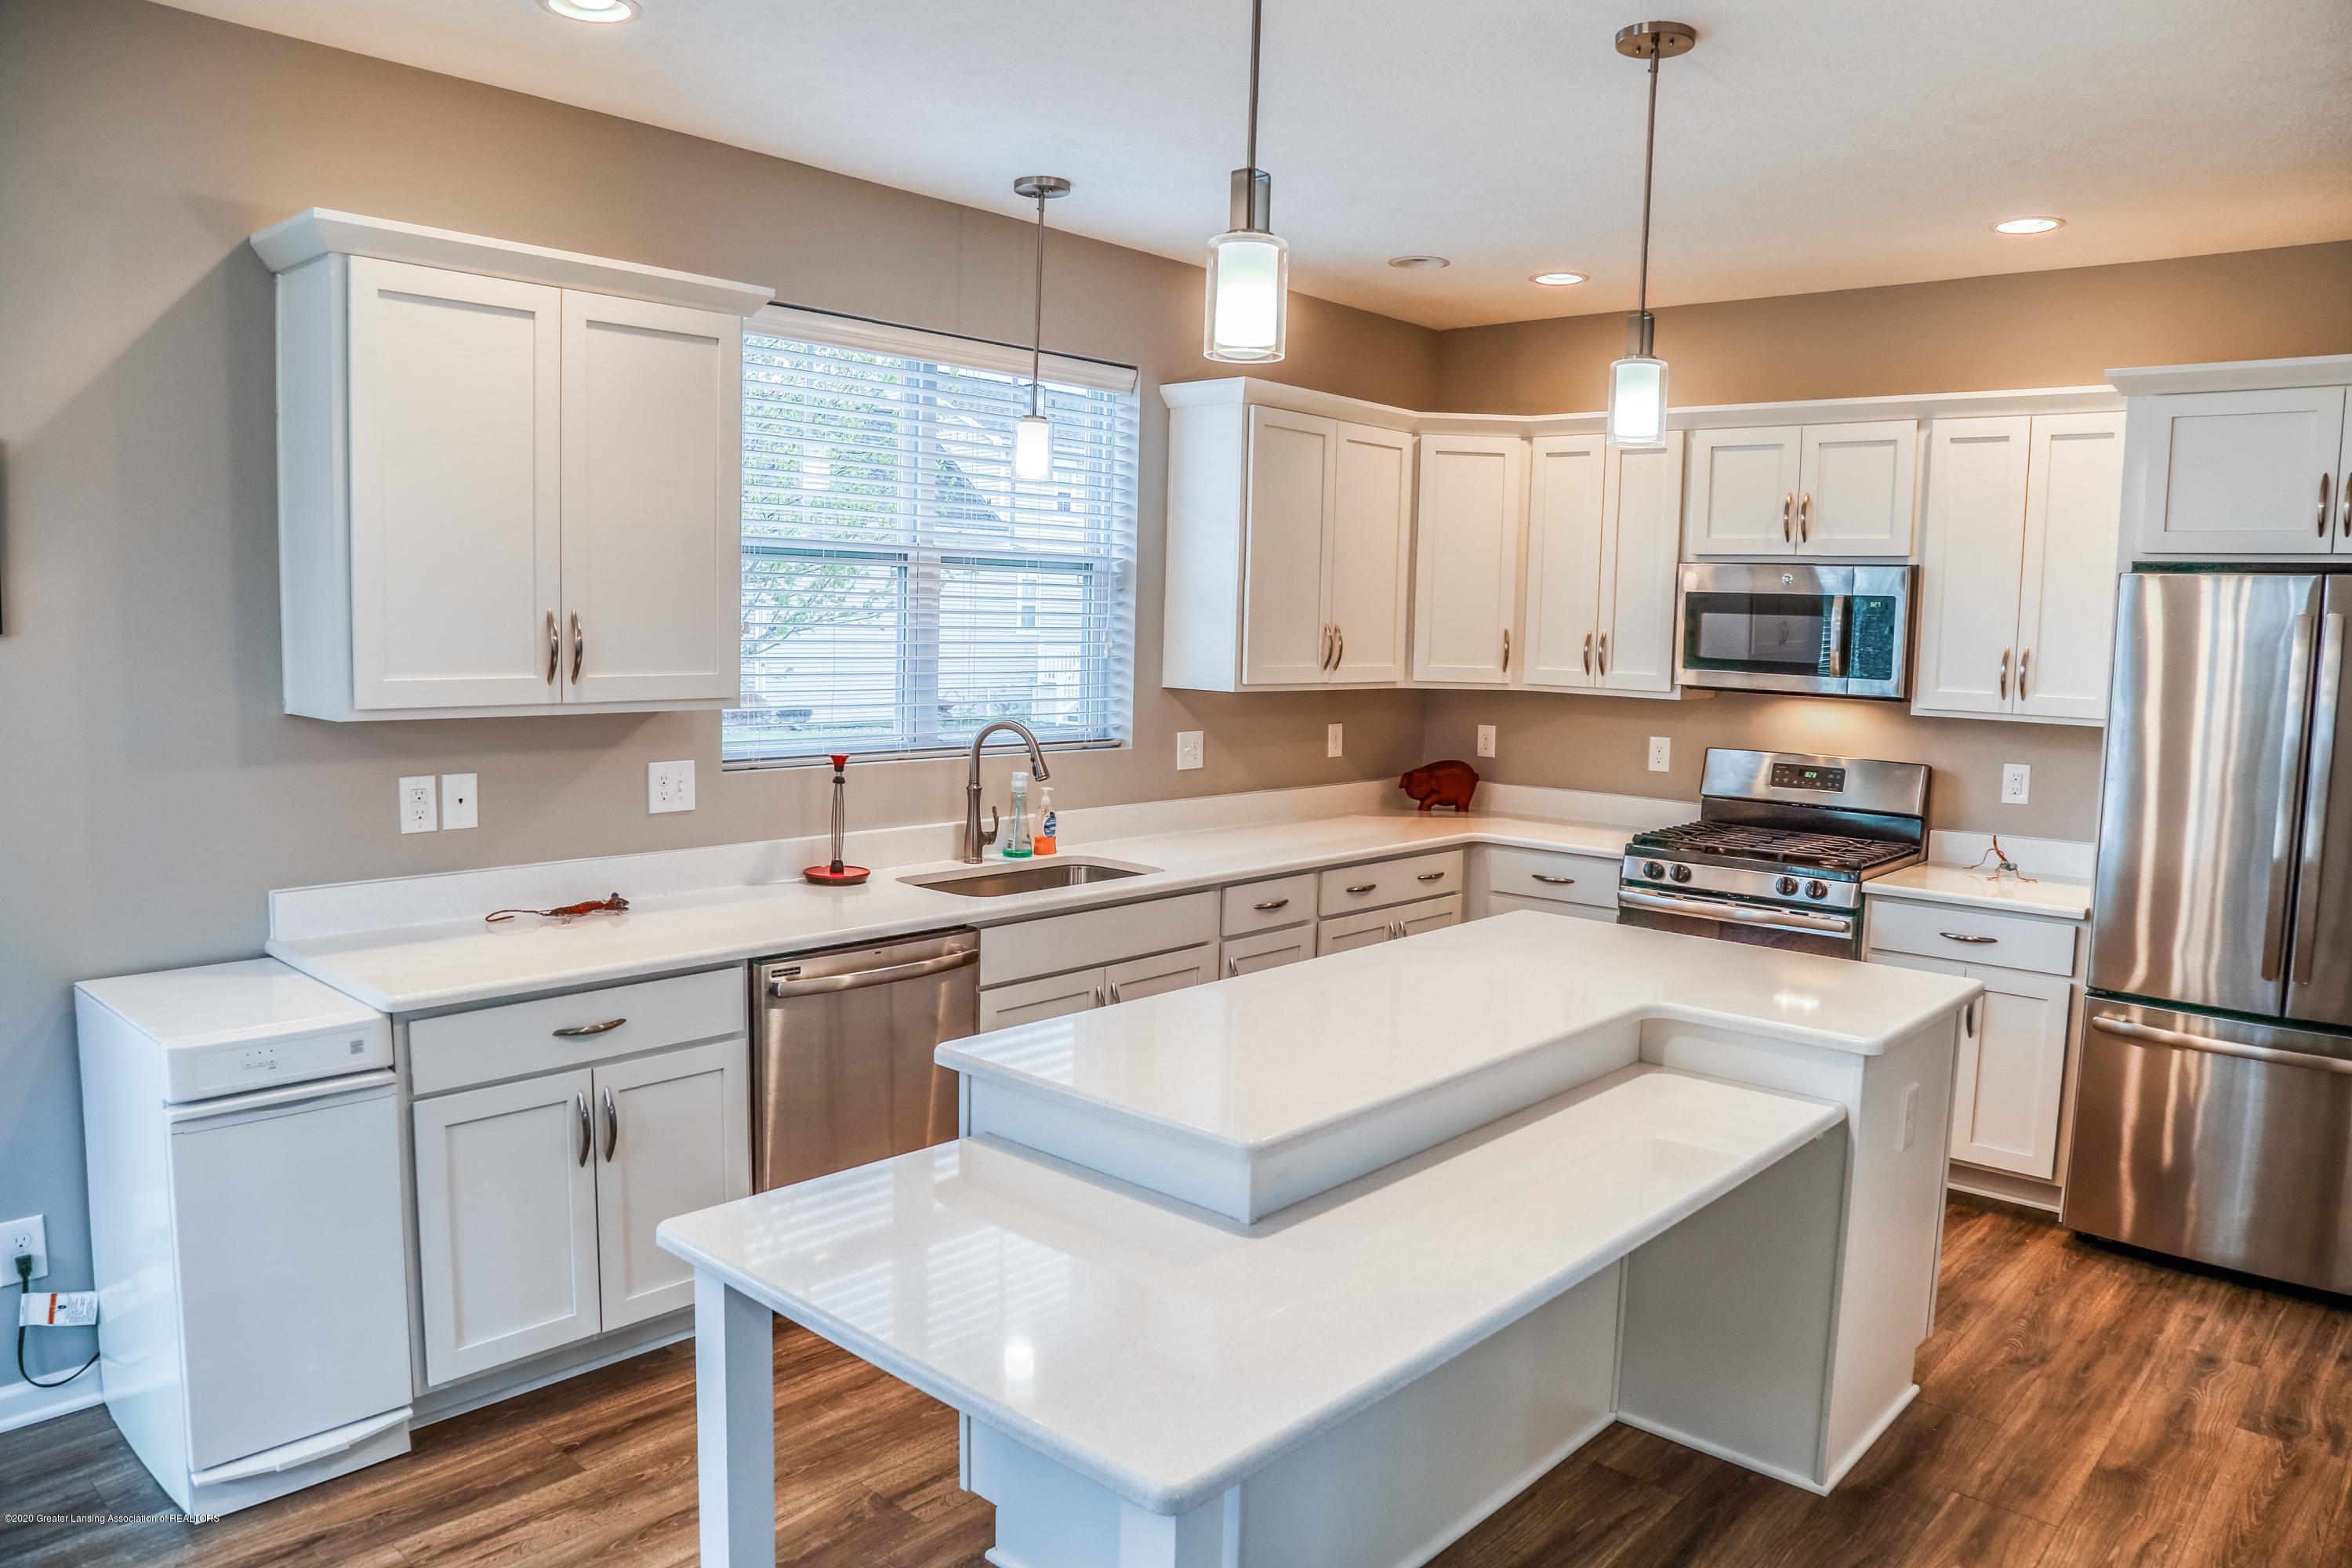 636 Buteo Dr - Kitchen - 11